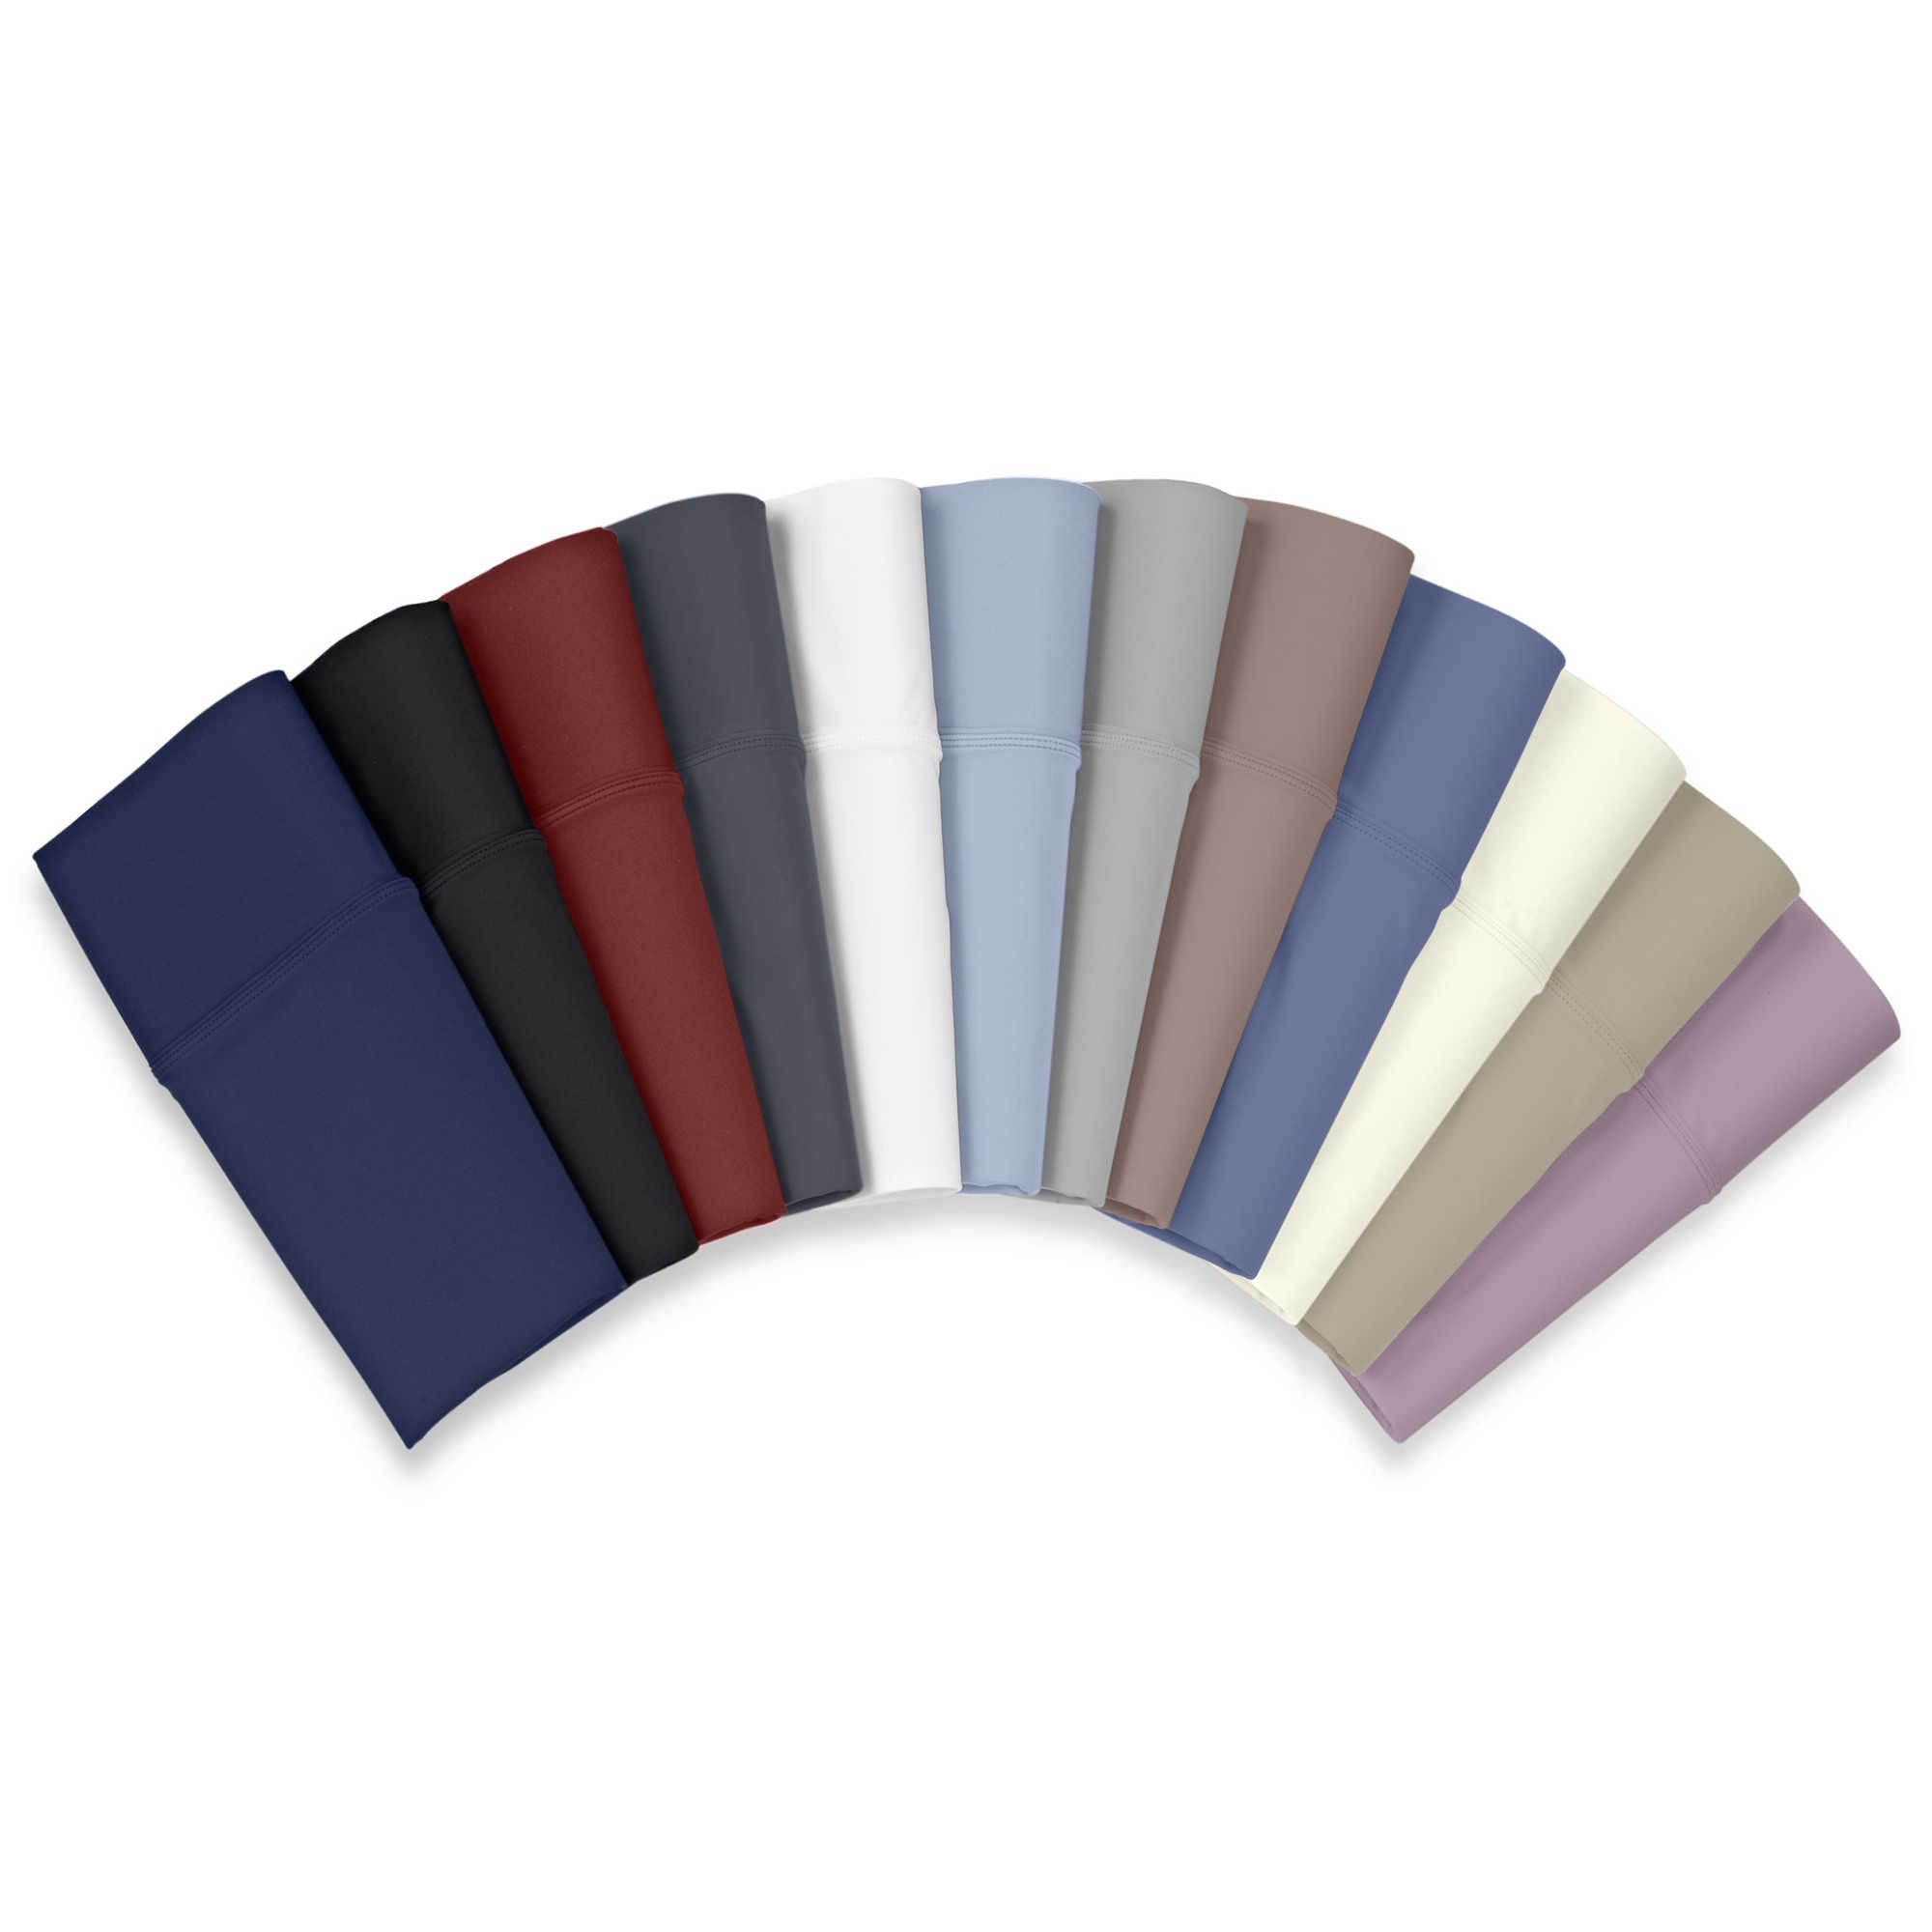 Best For Breathability Sheex Experience Performance Fabric Sheet Set